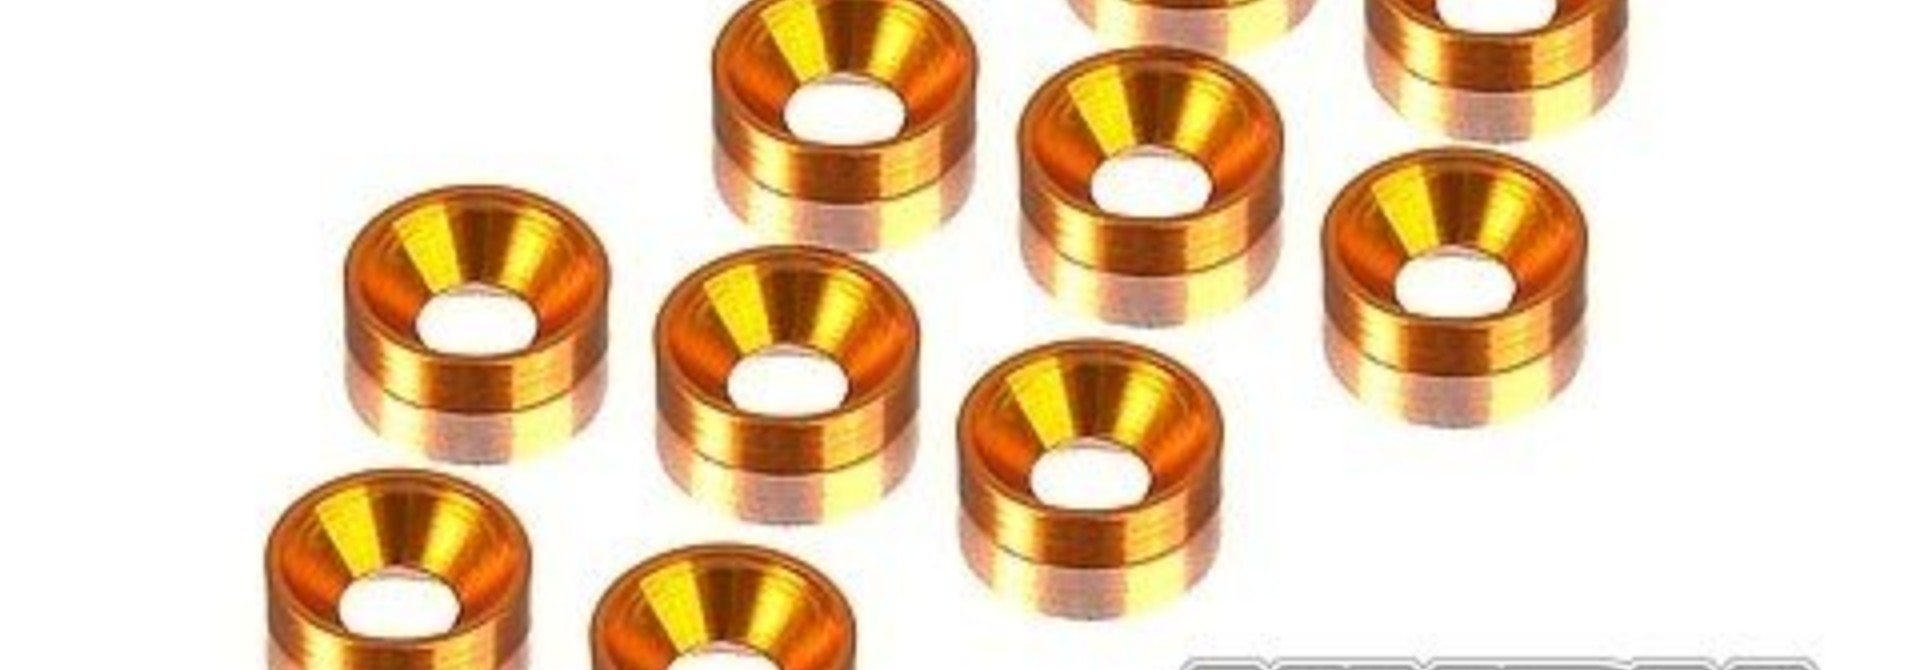 Alu Countersunk Shim - Orange (10), H296510-O